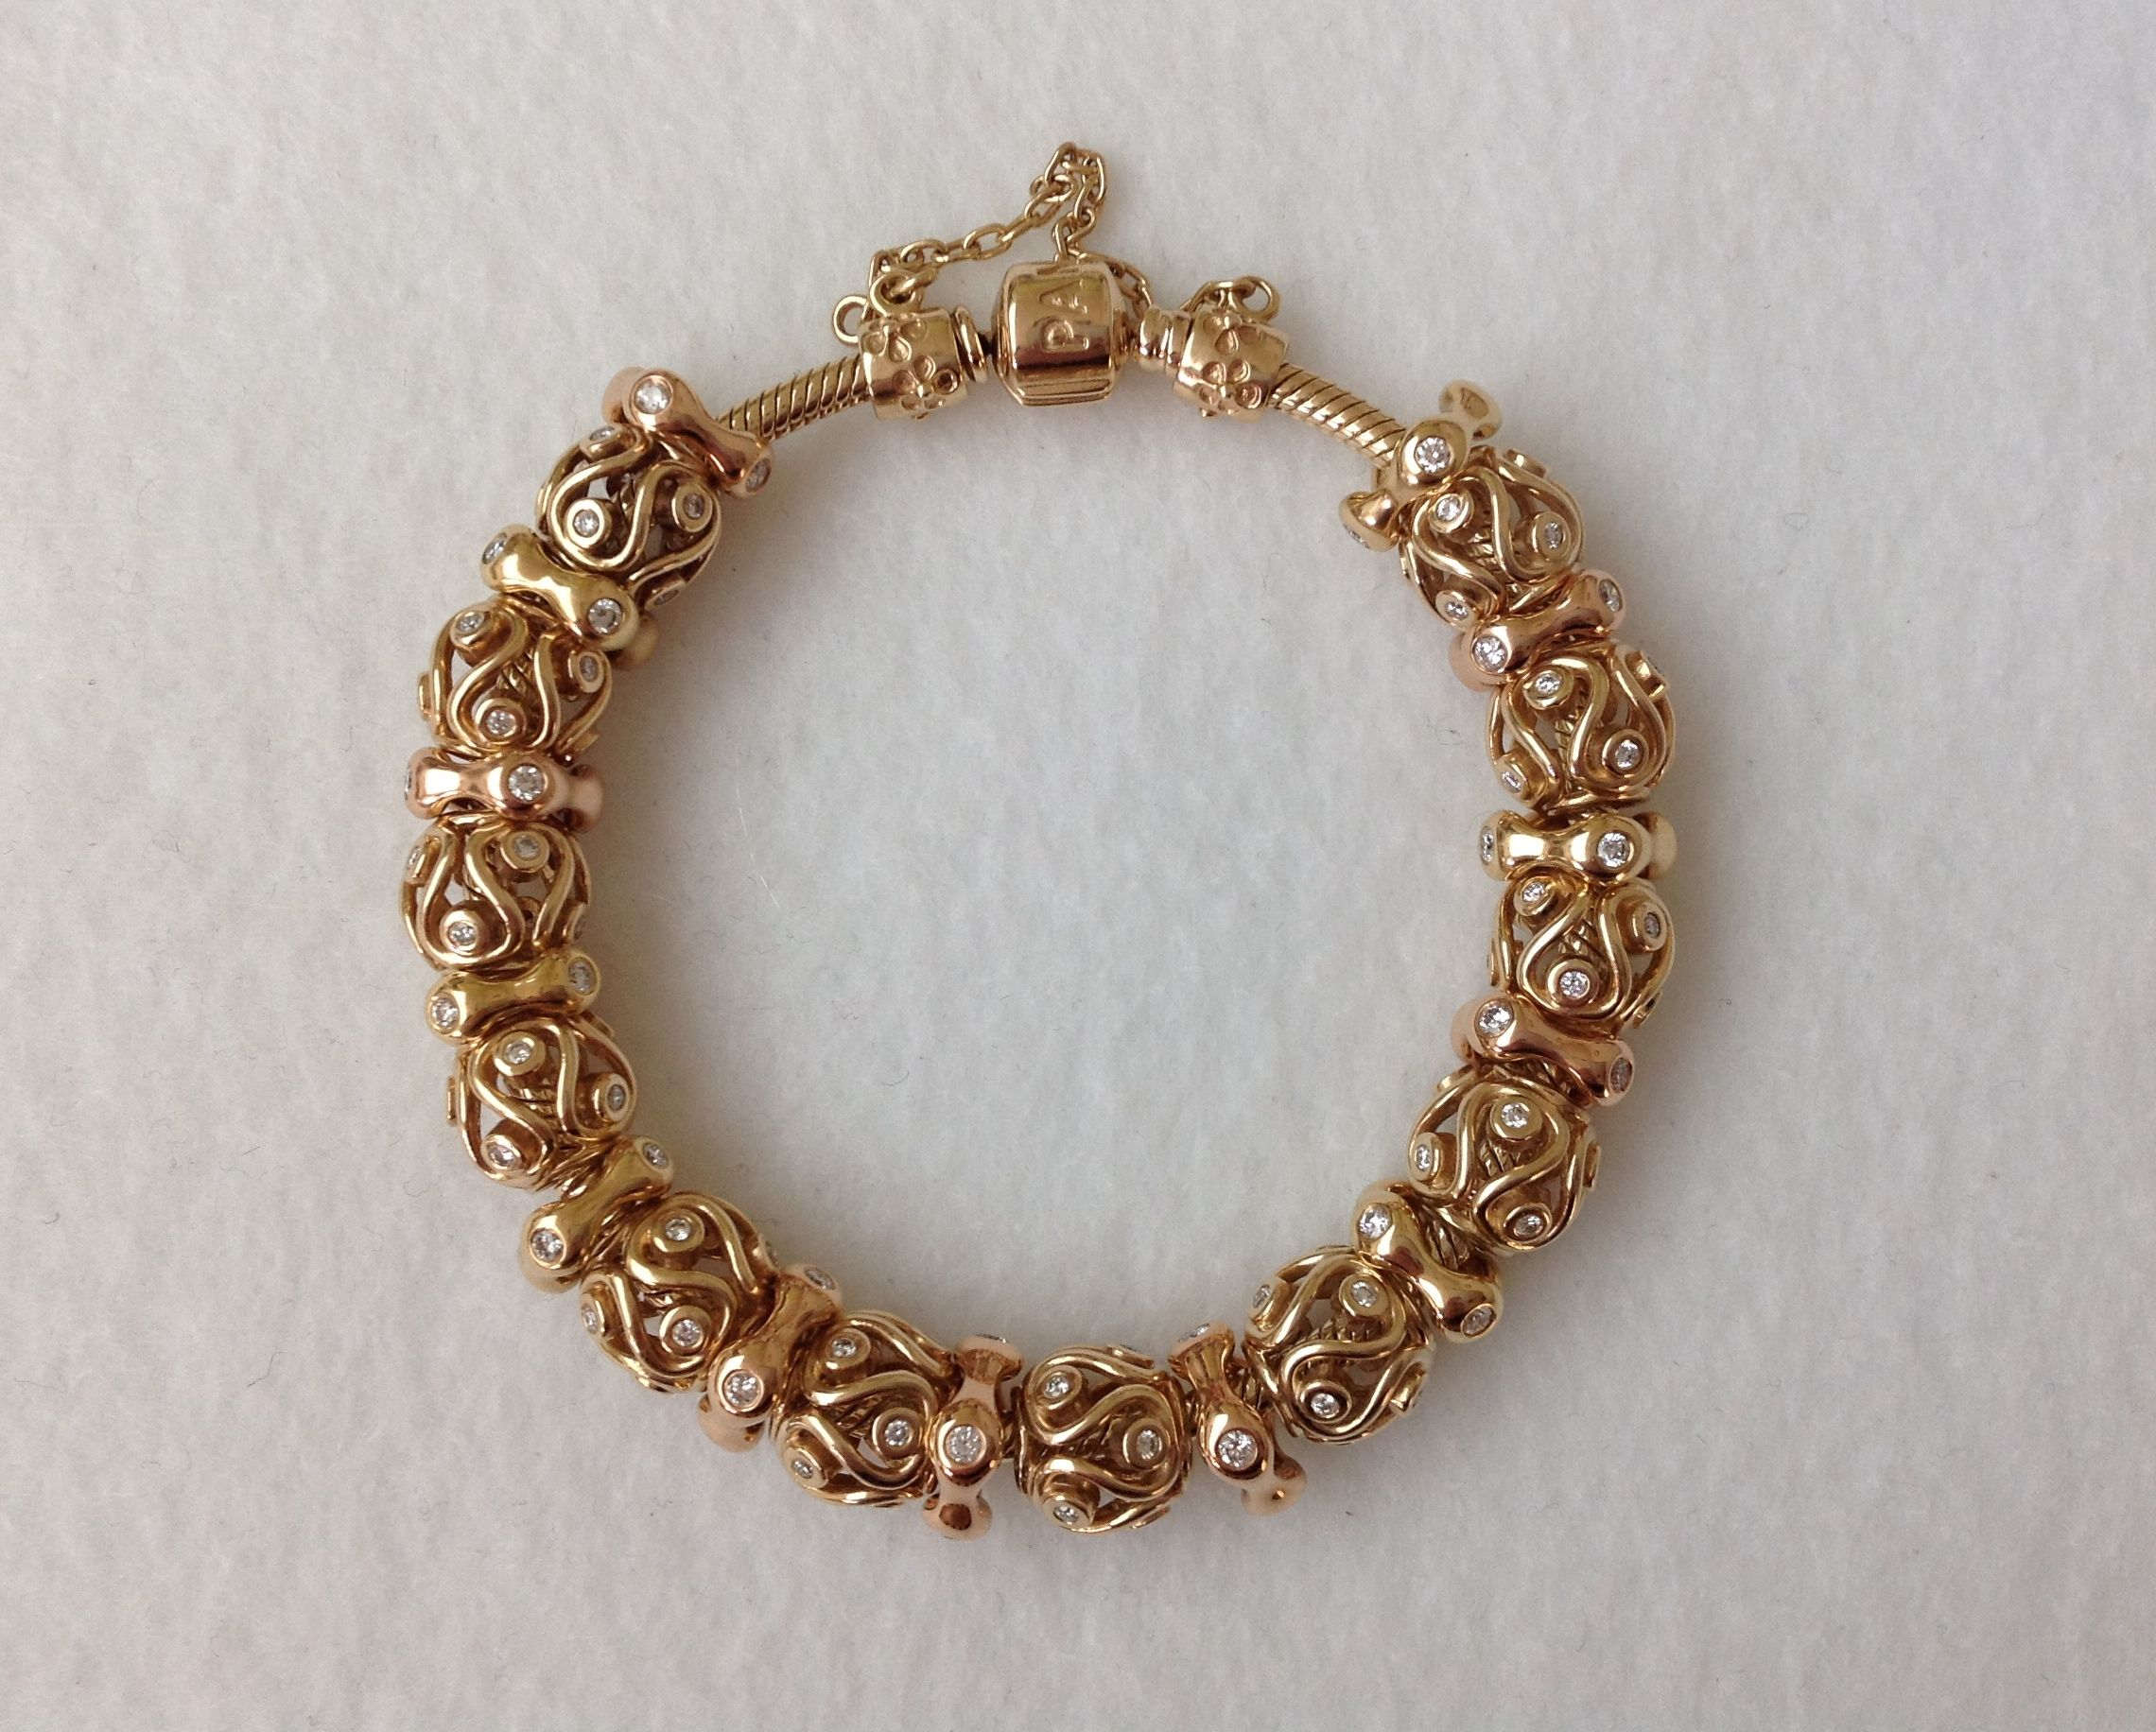 Pandora All Gold Bracelet Simply Stunning!